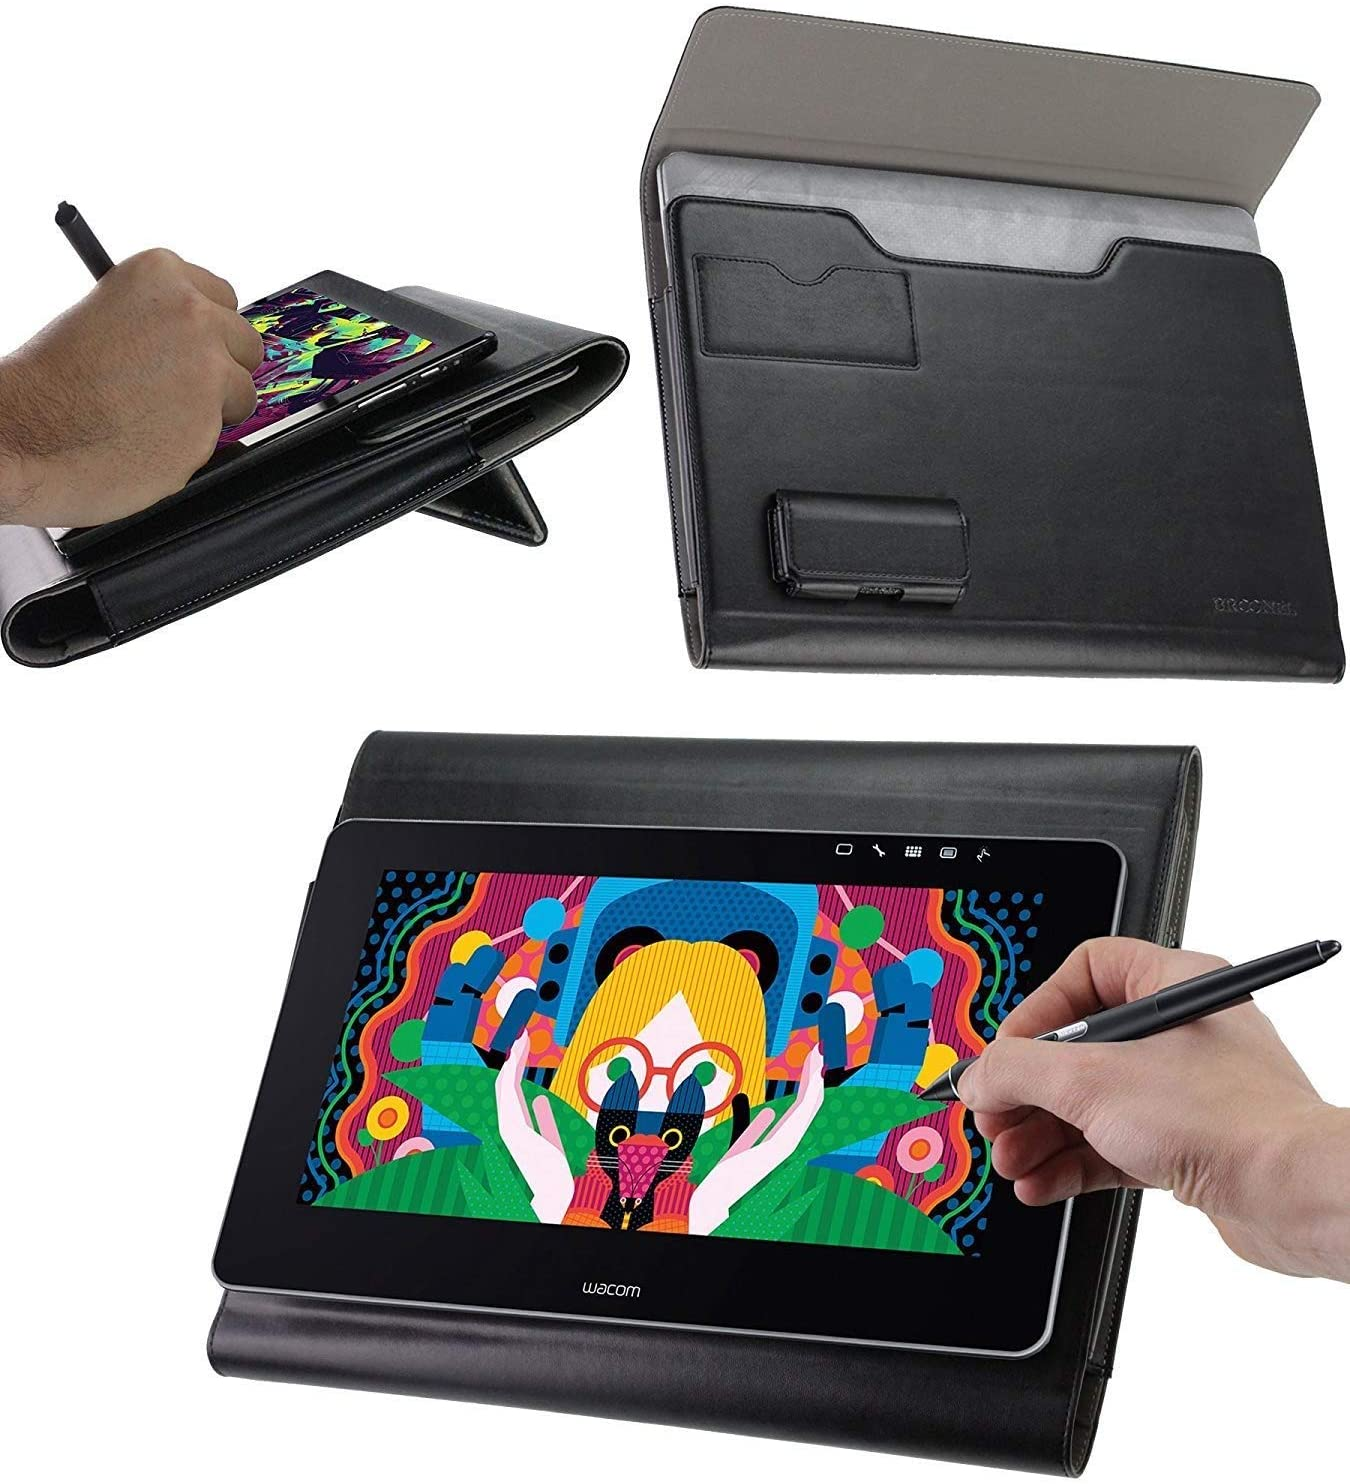 Broonel - Prestige - Black Premium Graphics Tablet Folio Case Cover Compatible with The Grandbeing 12Inch LCD Writing Board Drawing Art Tablet